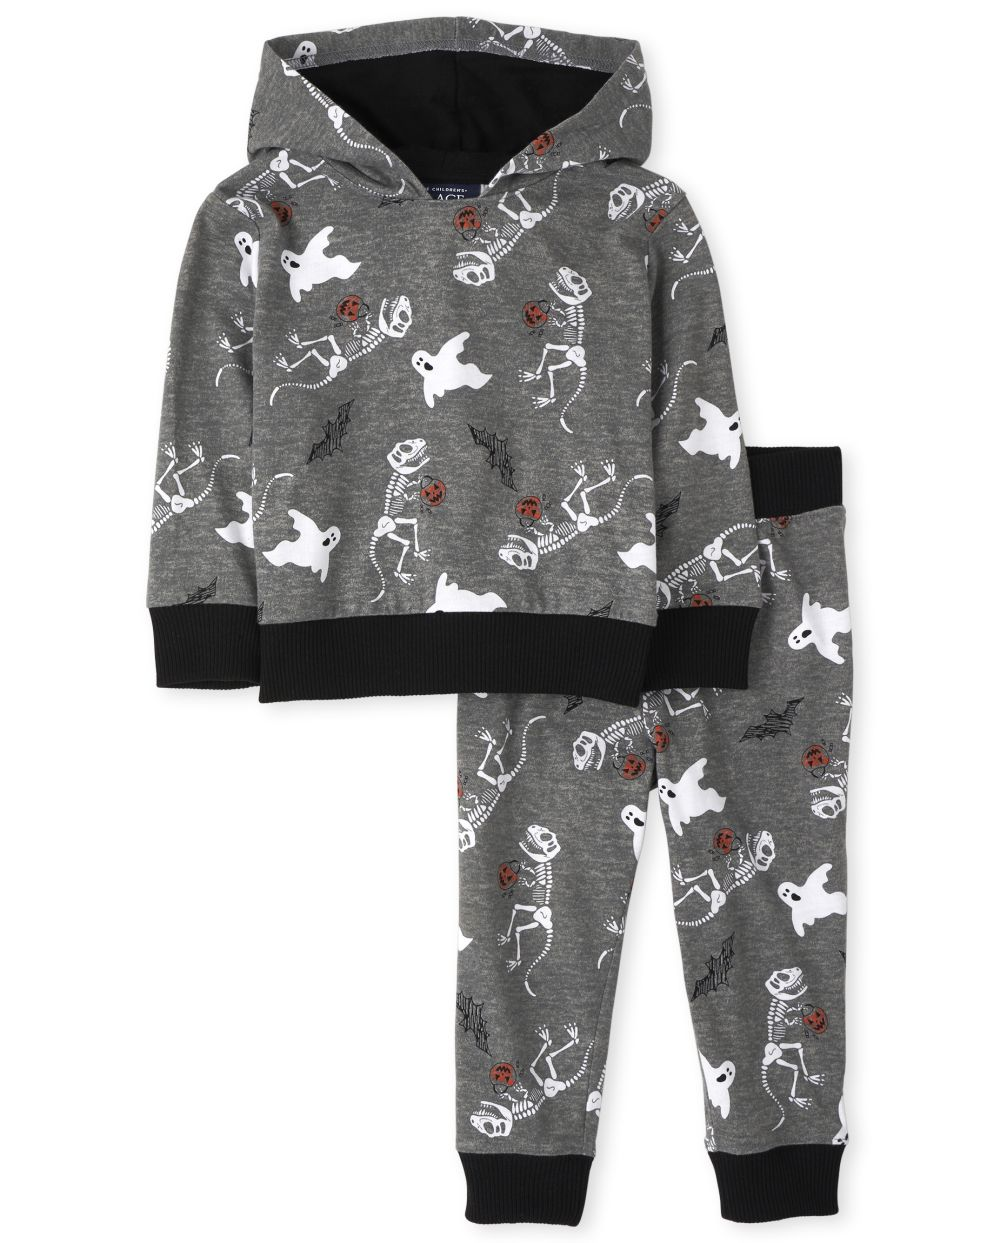 Baby And Toddler Boys Dino Outfit Set